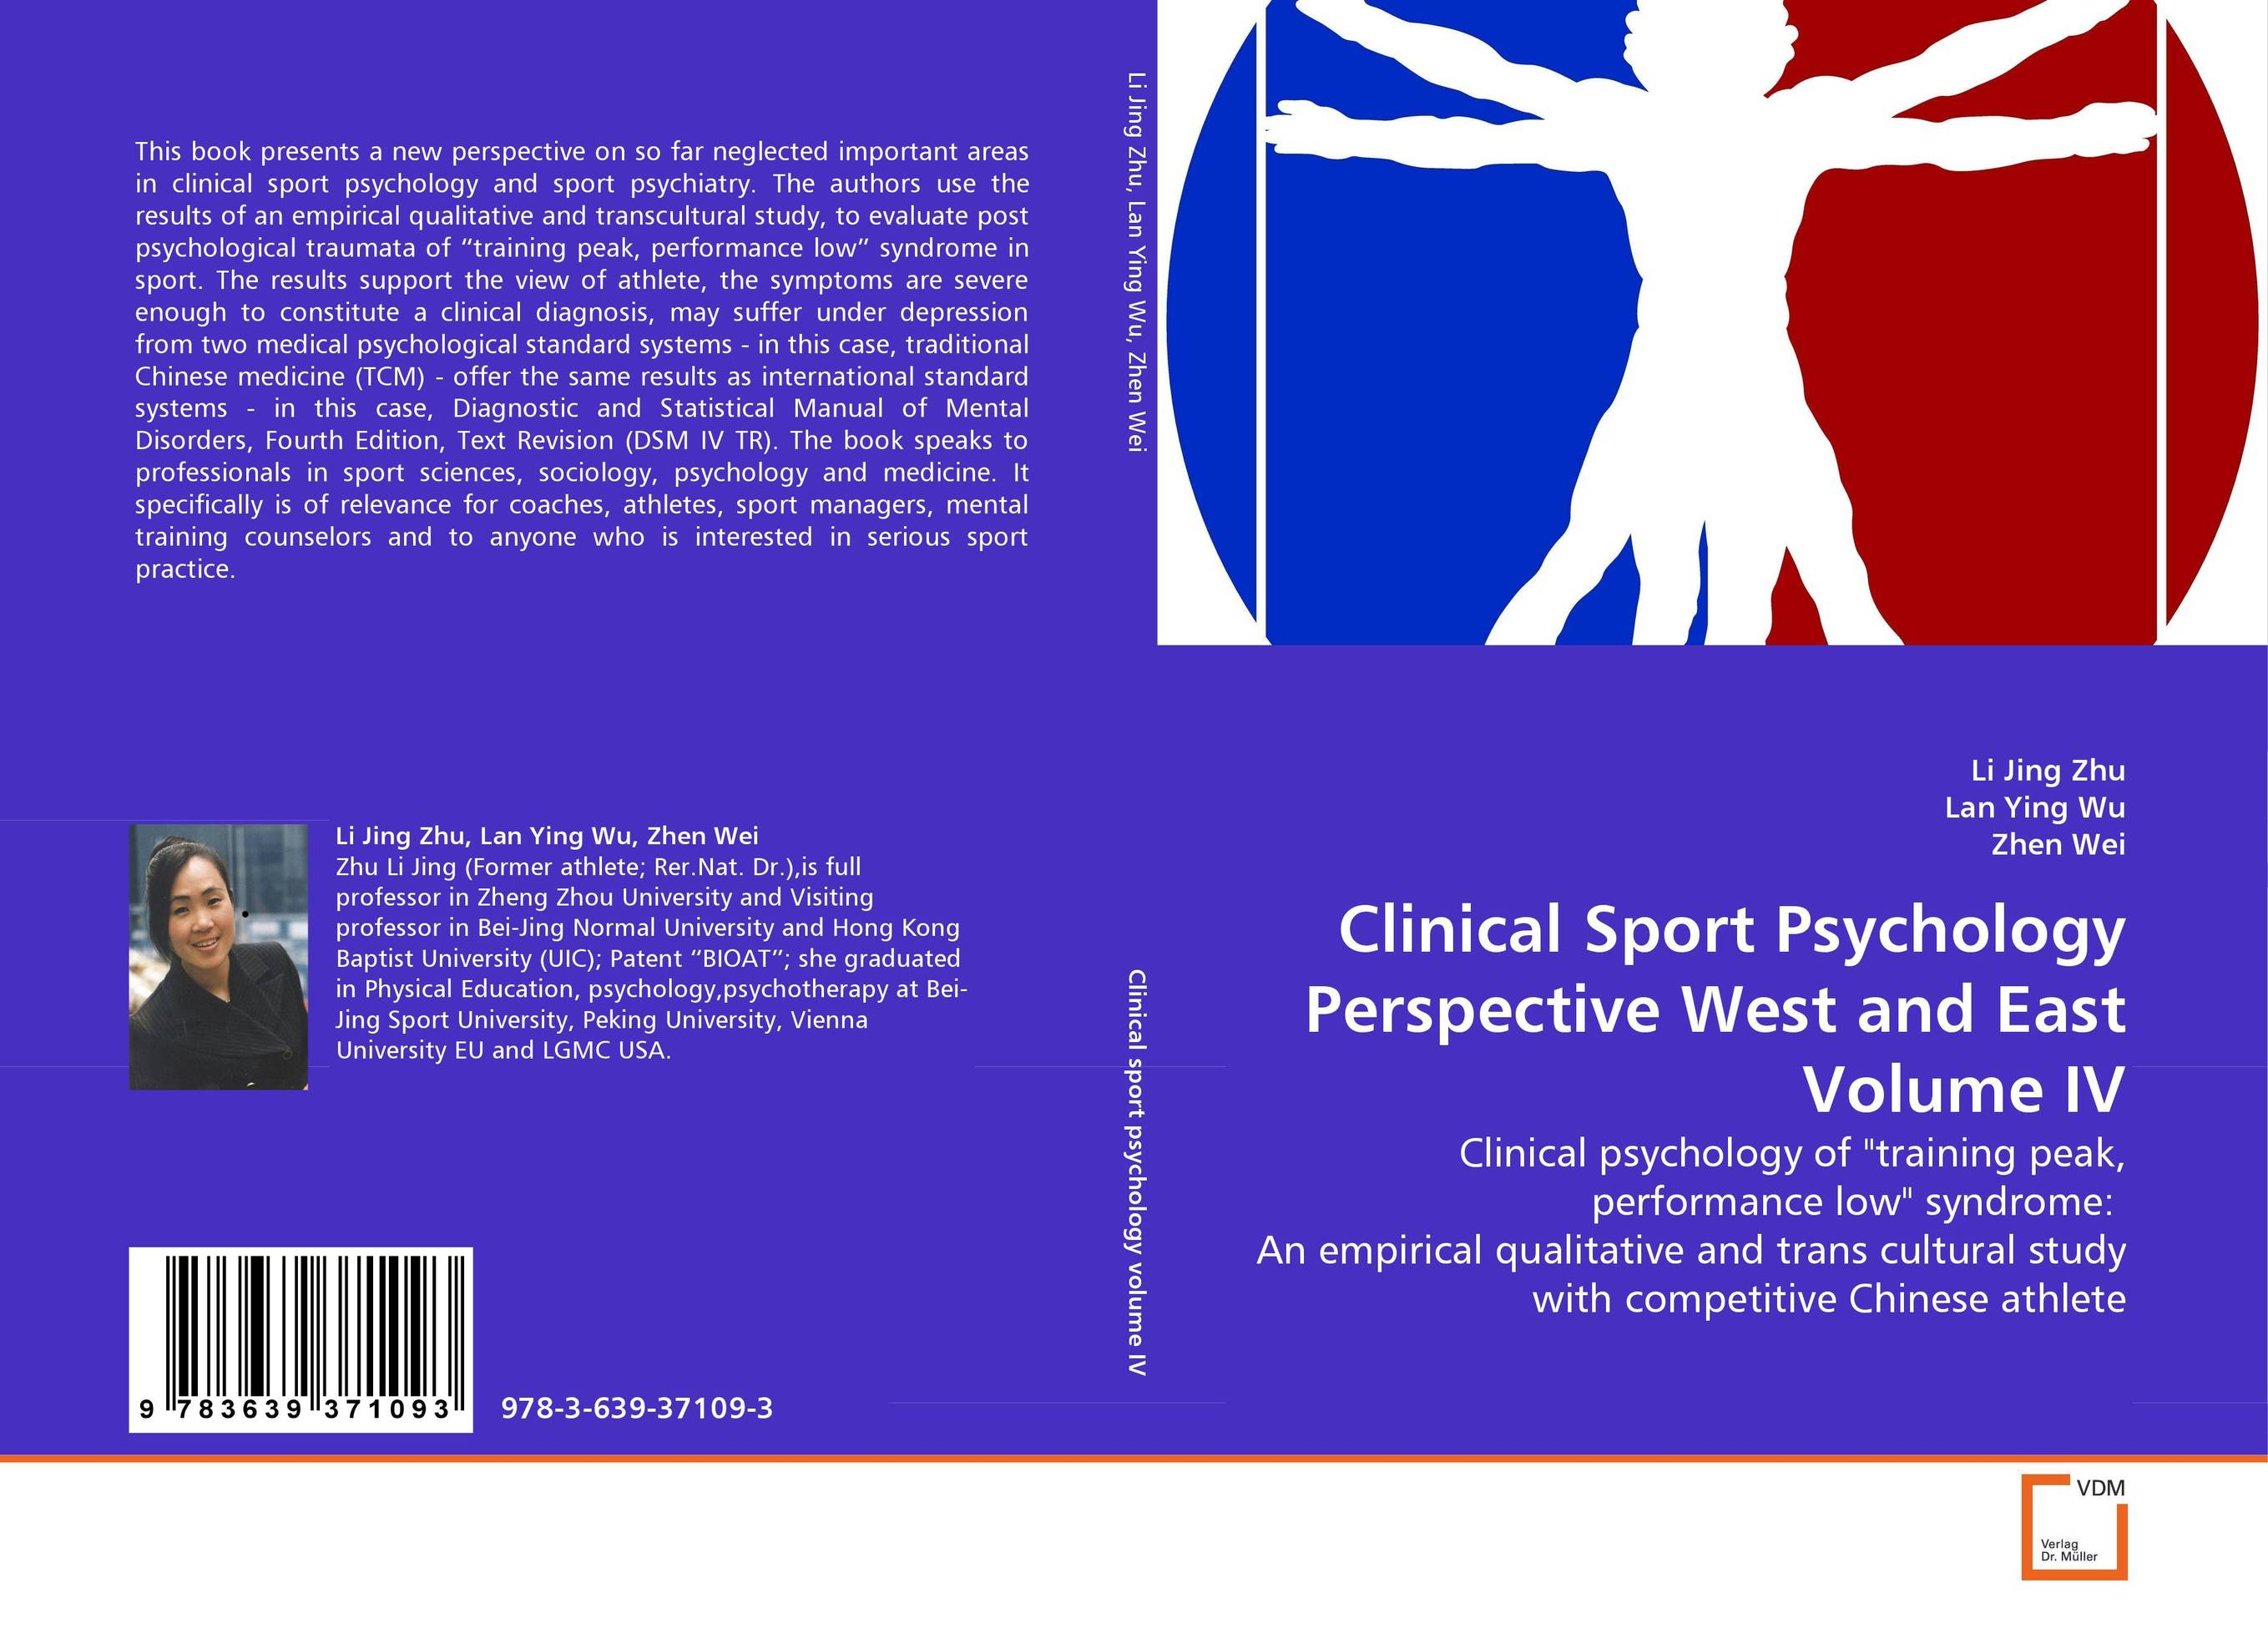 Clinical Sport Psychology Perspective West and East Volume IV